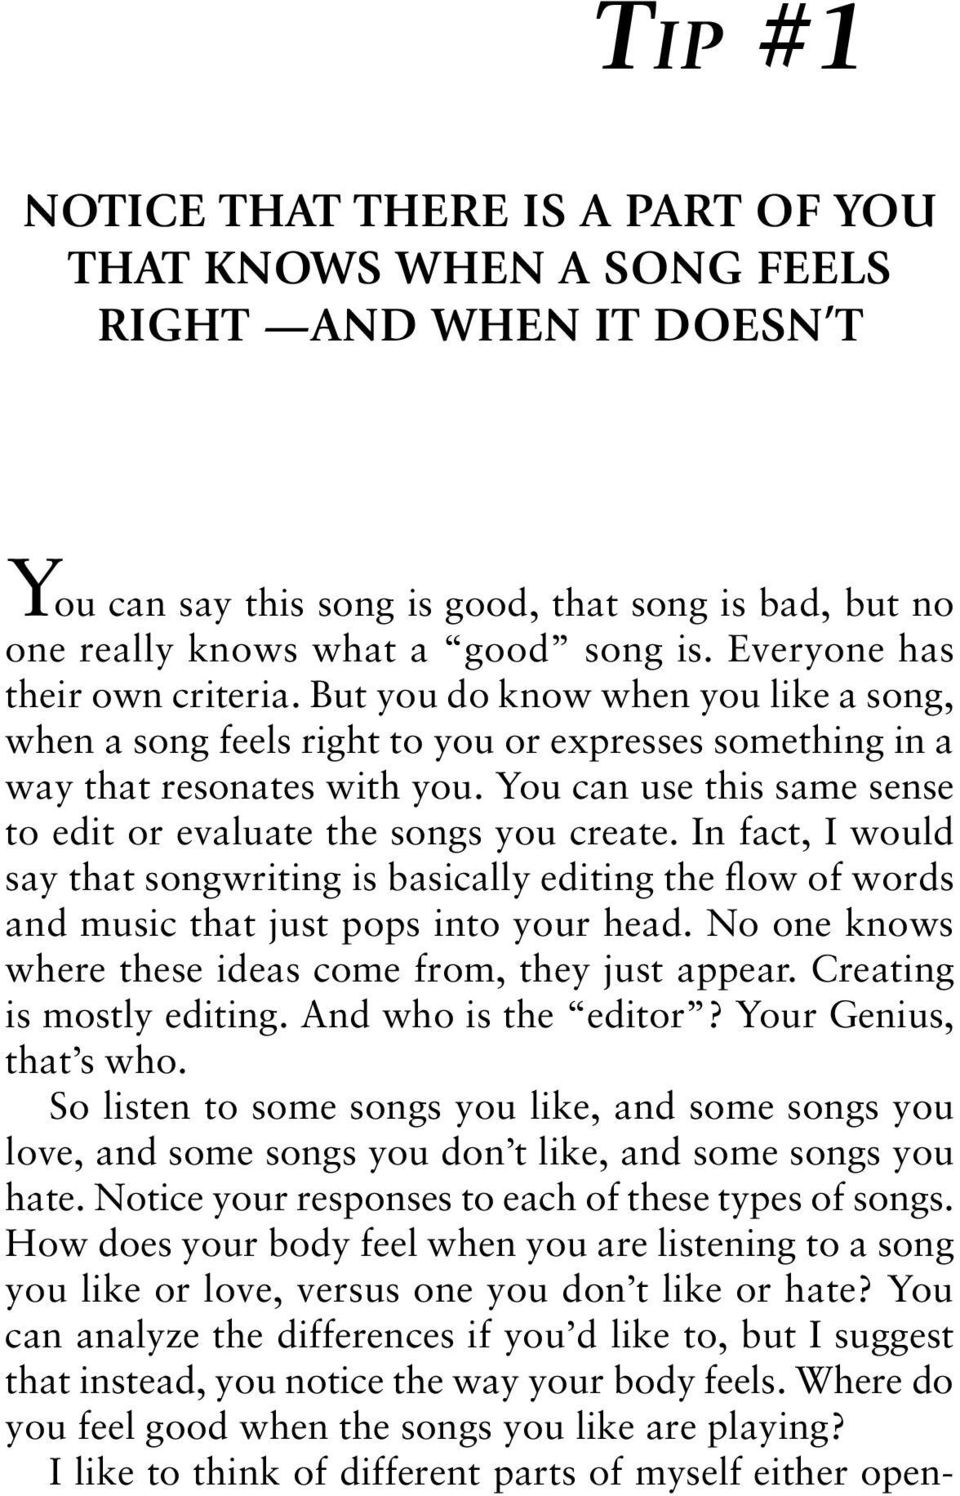 You can use this same sense to edit or evaluate the songs you create. In fact, I would say that songwriting is basically editing the flow of words and music that just pops into your head.